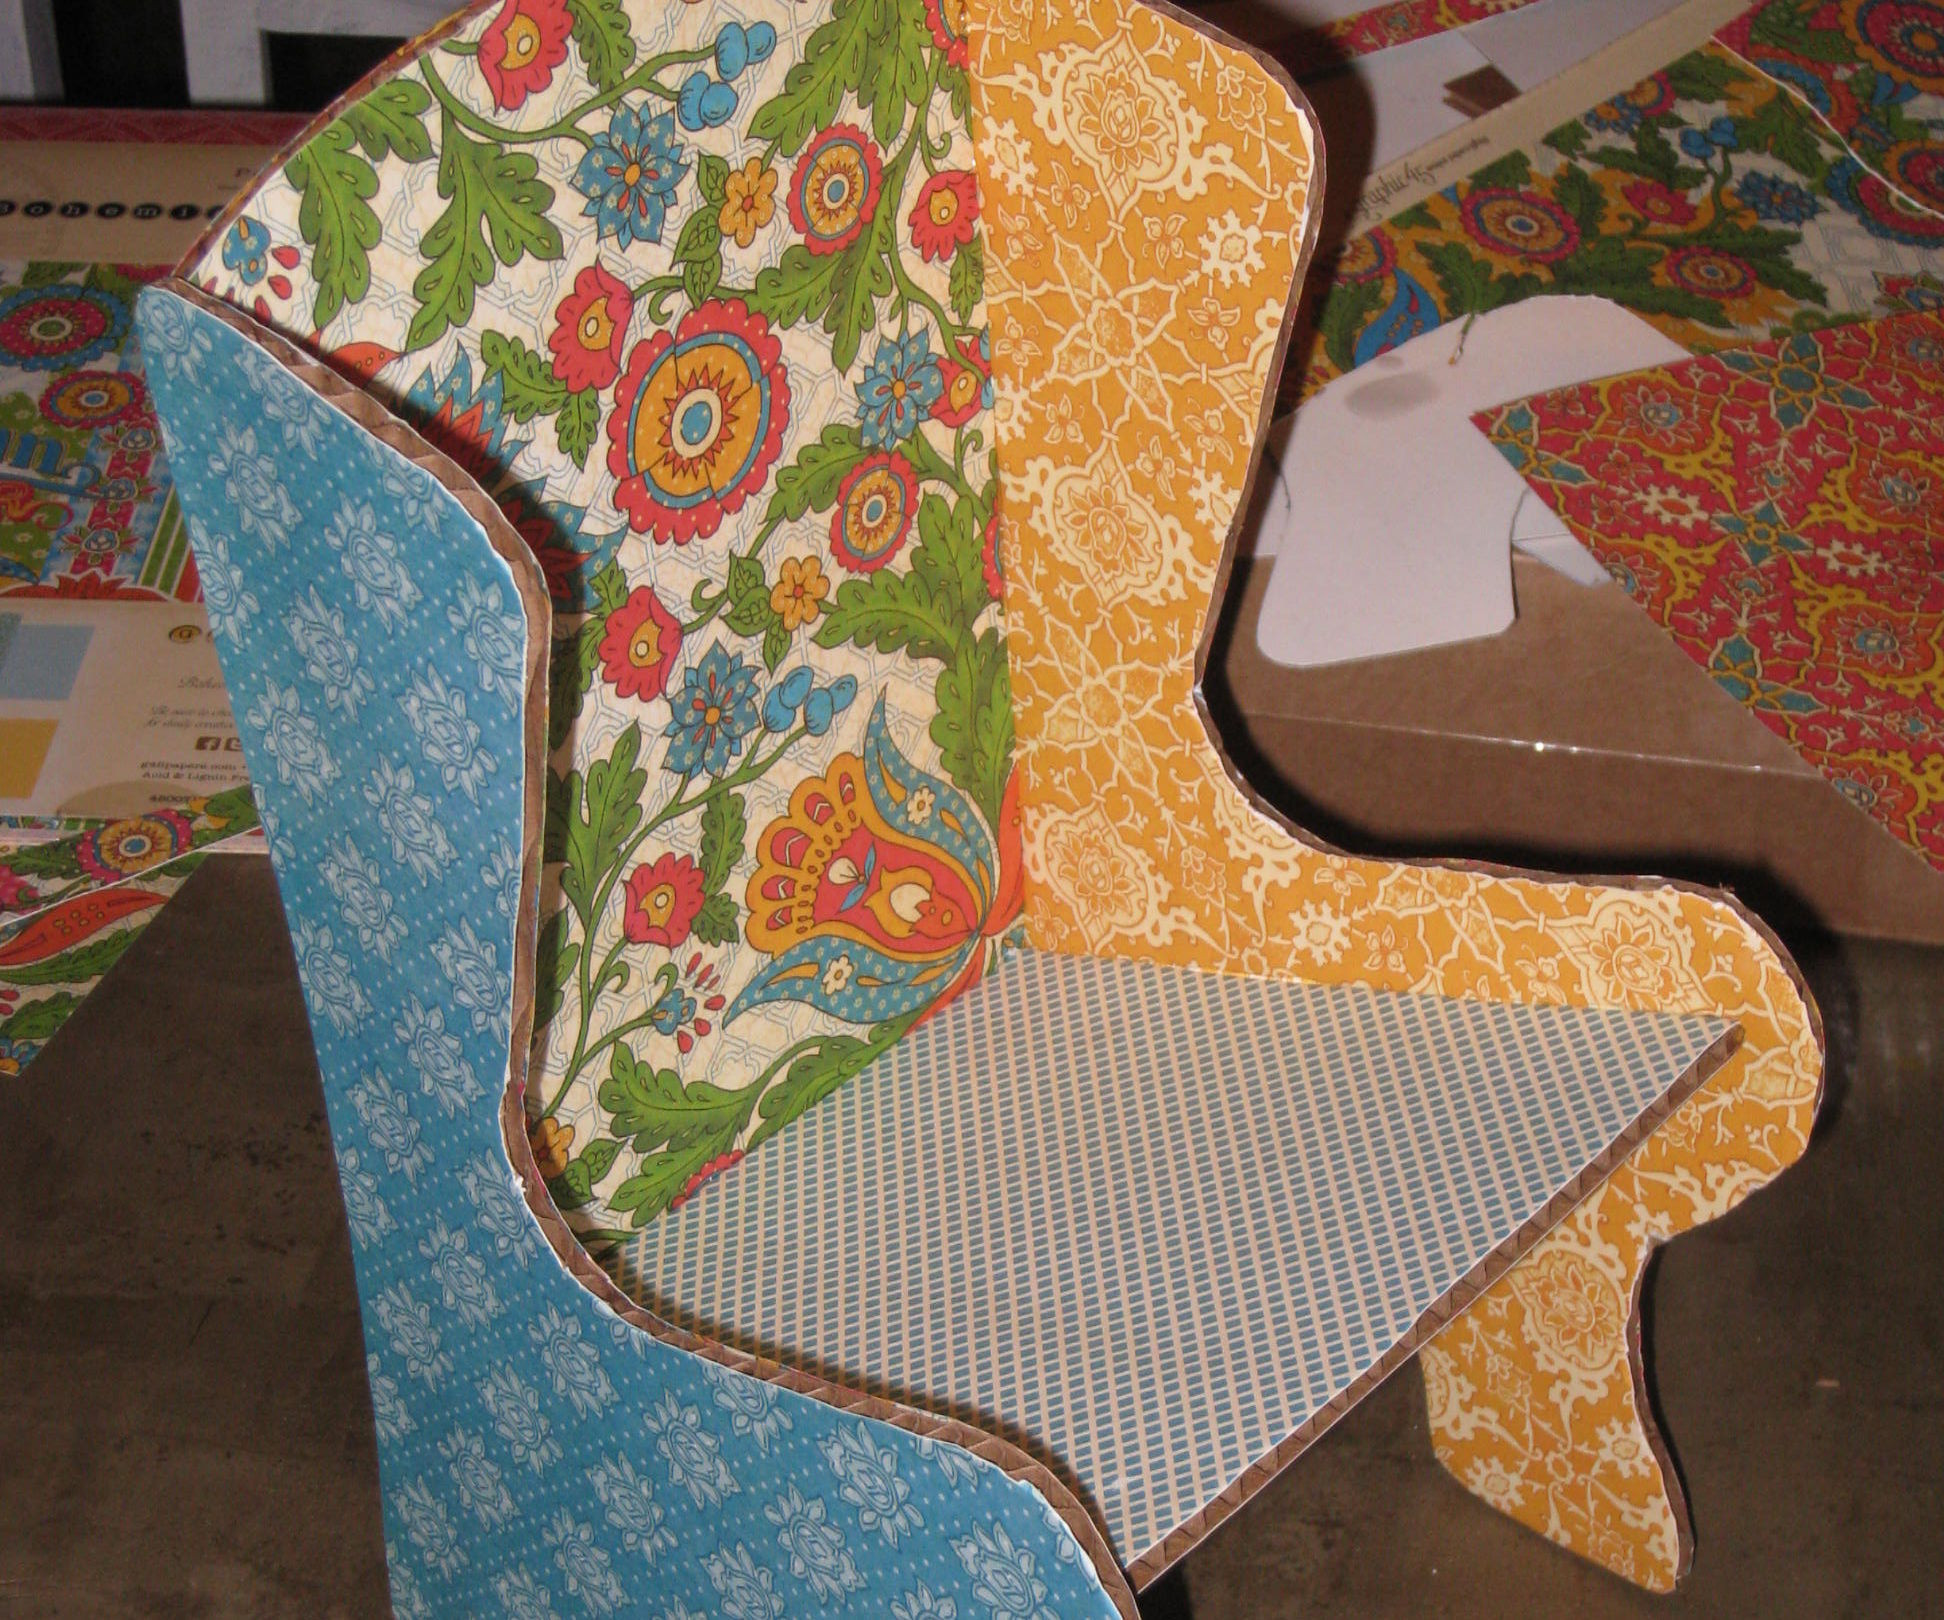 Best ideas about 18 Inch Doll Furniture DIY . Save or Pin DIY 18 Inch Doll Chair 4 Now.